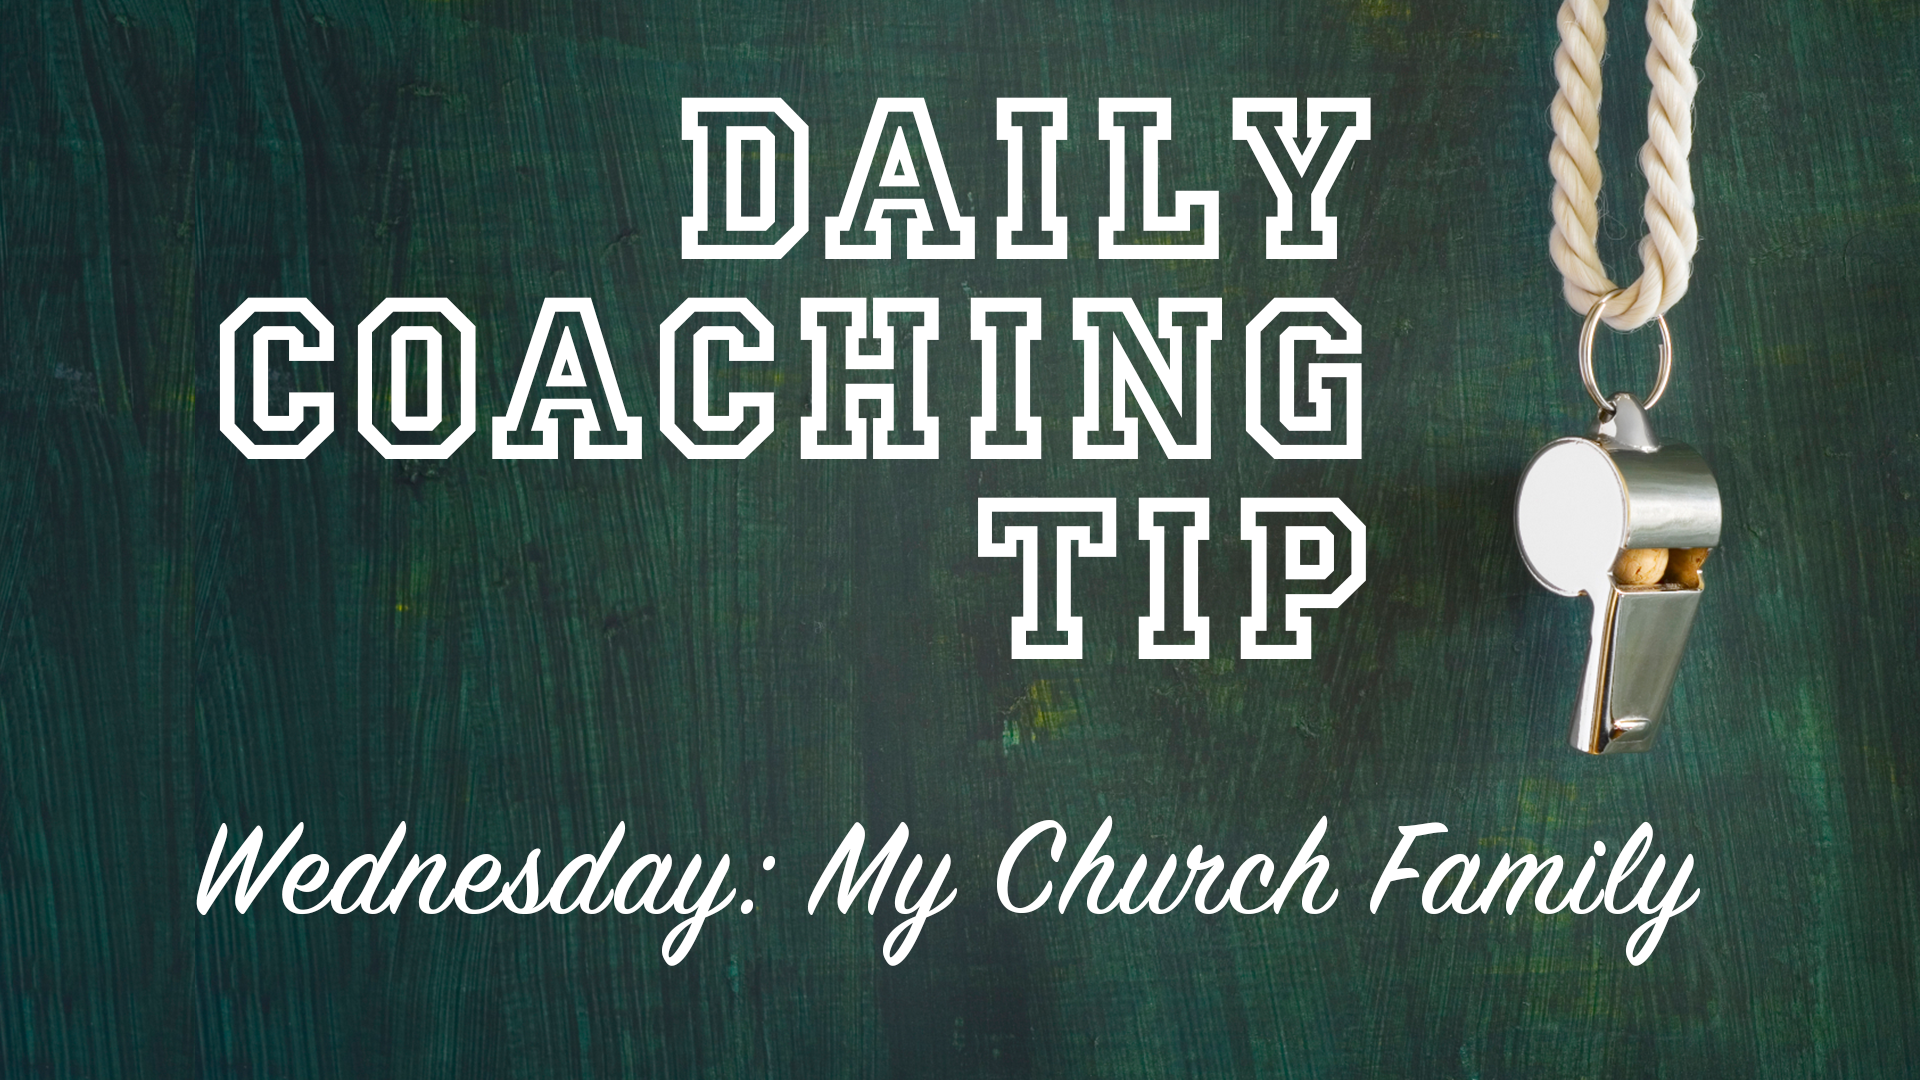 Daily Coaching Tip, Wednesday, March 2nd, 2016